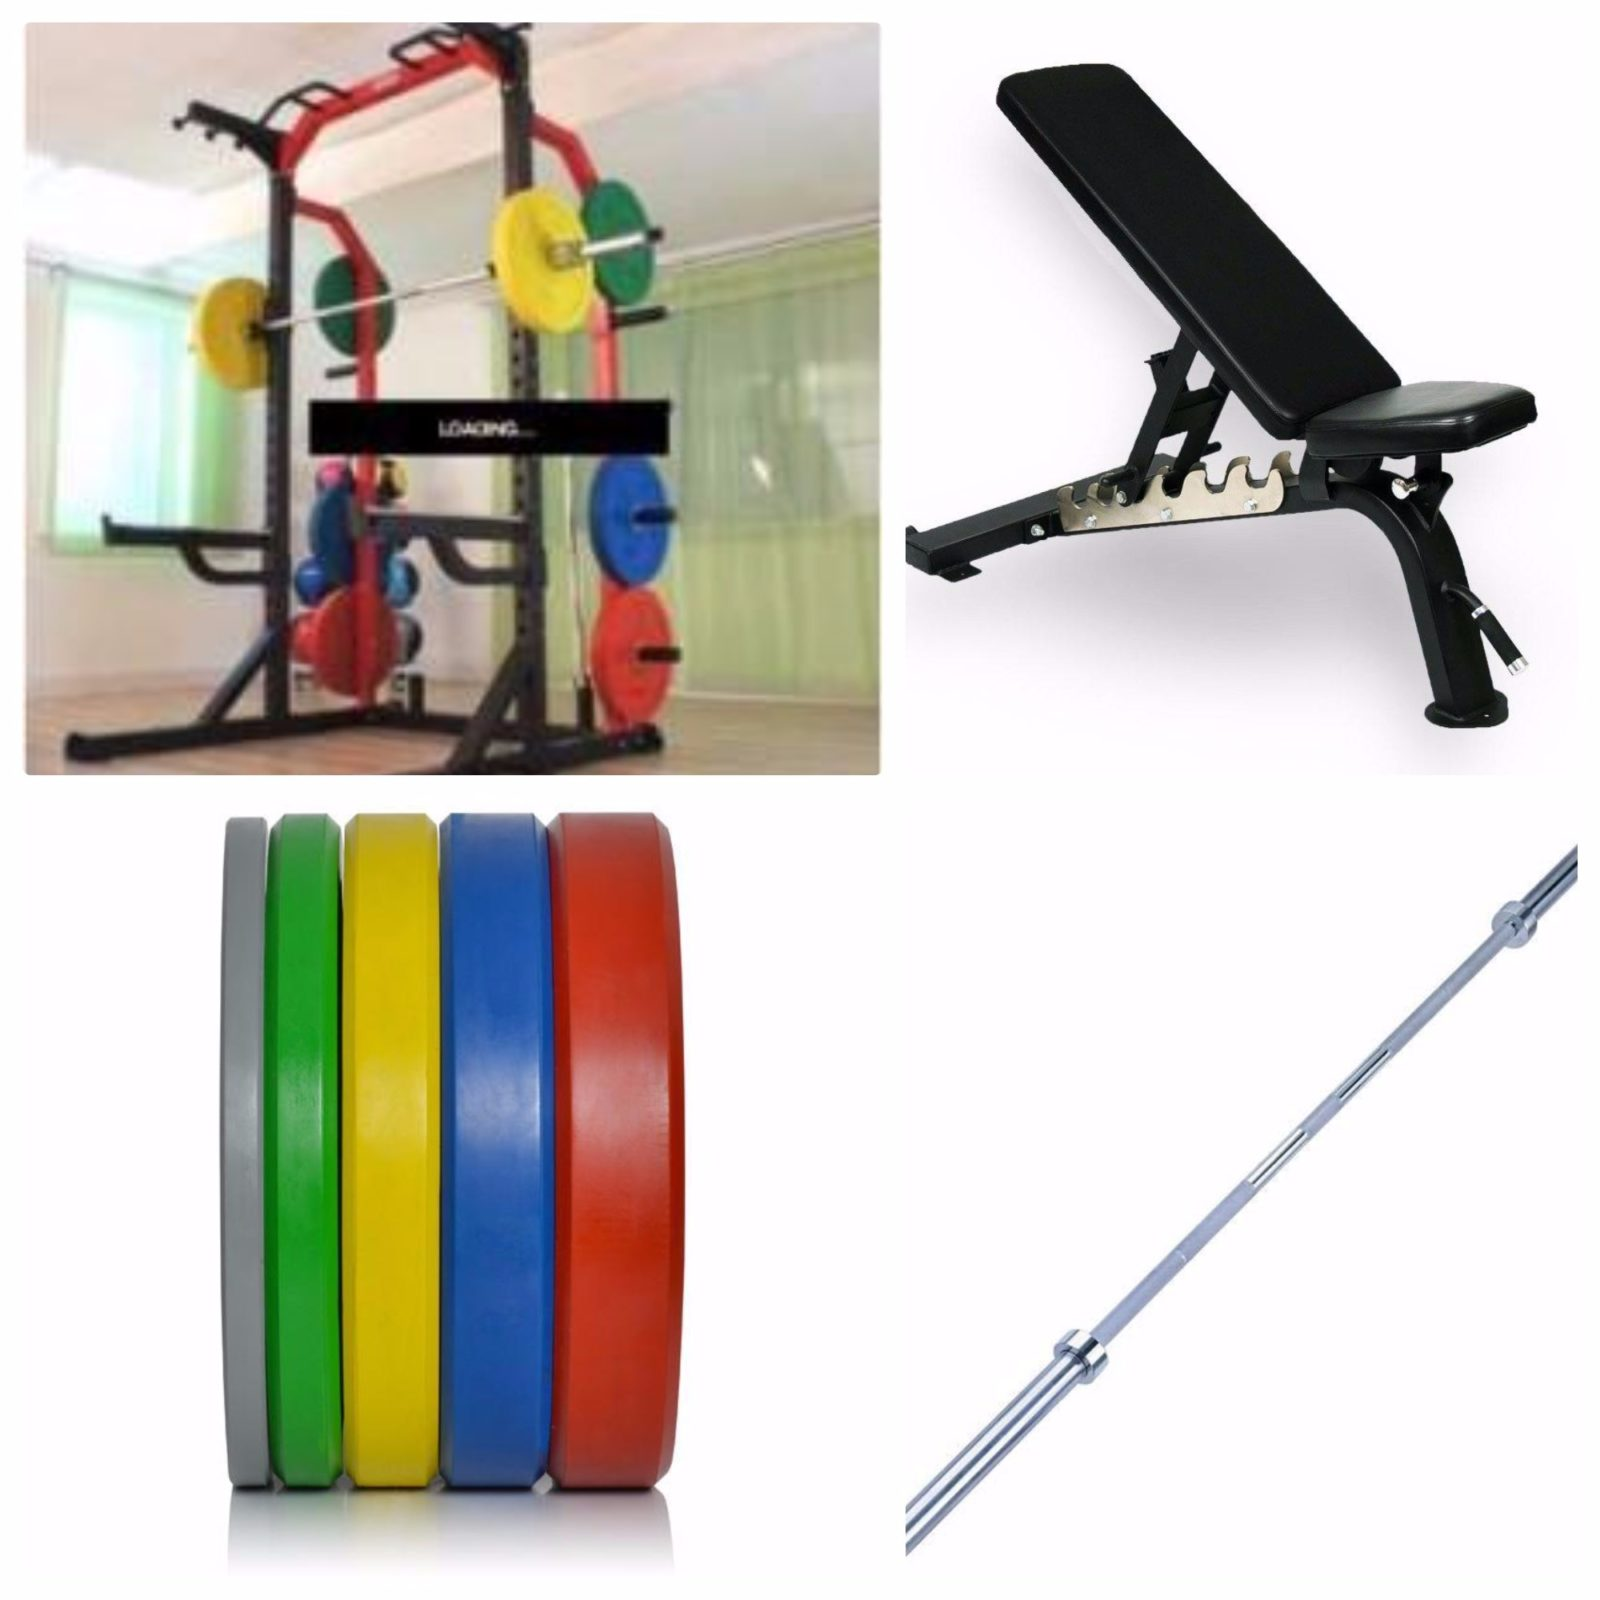 Light commercial gym package fitness equipment ireland best for light commercial gym package both aloadofball Choice Image